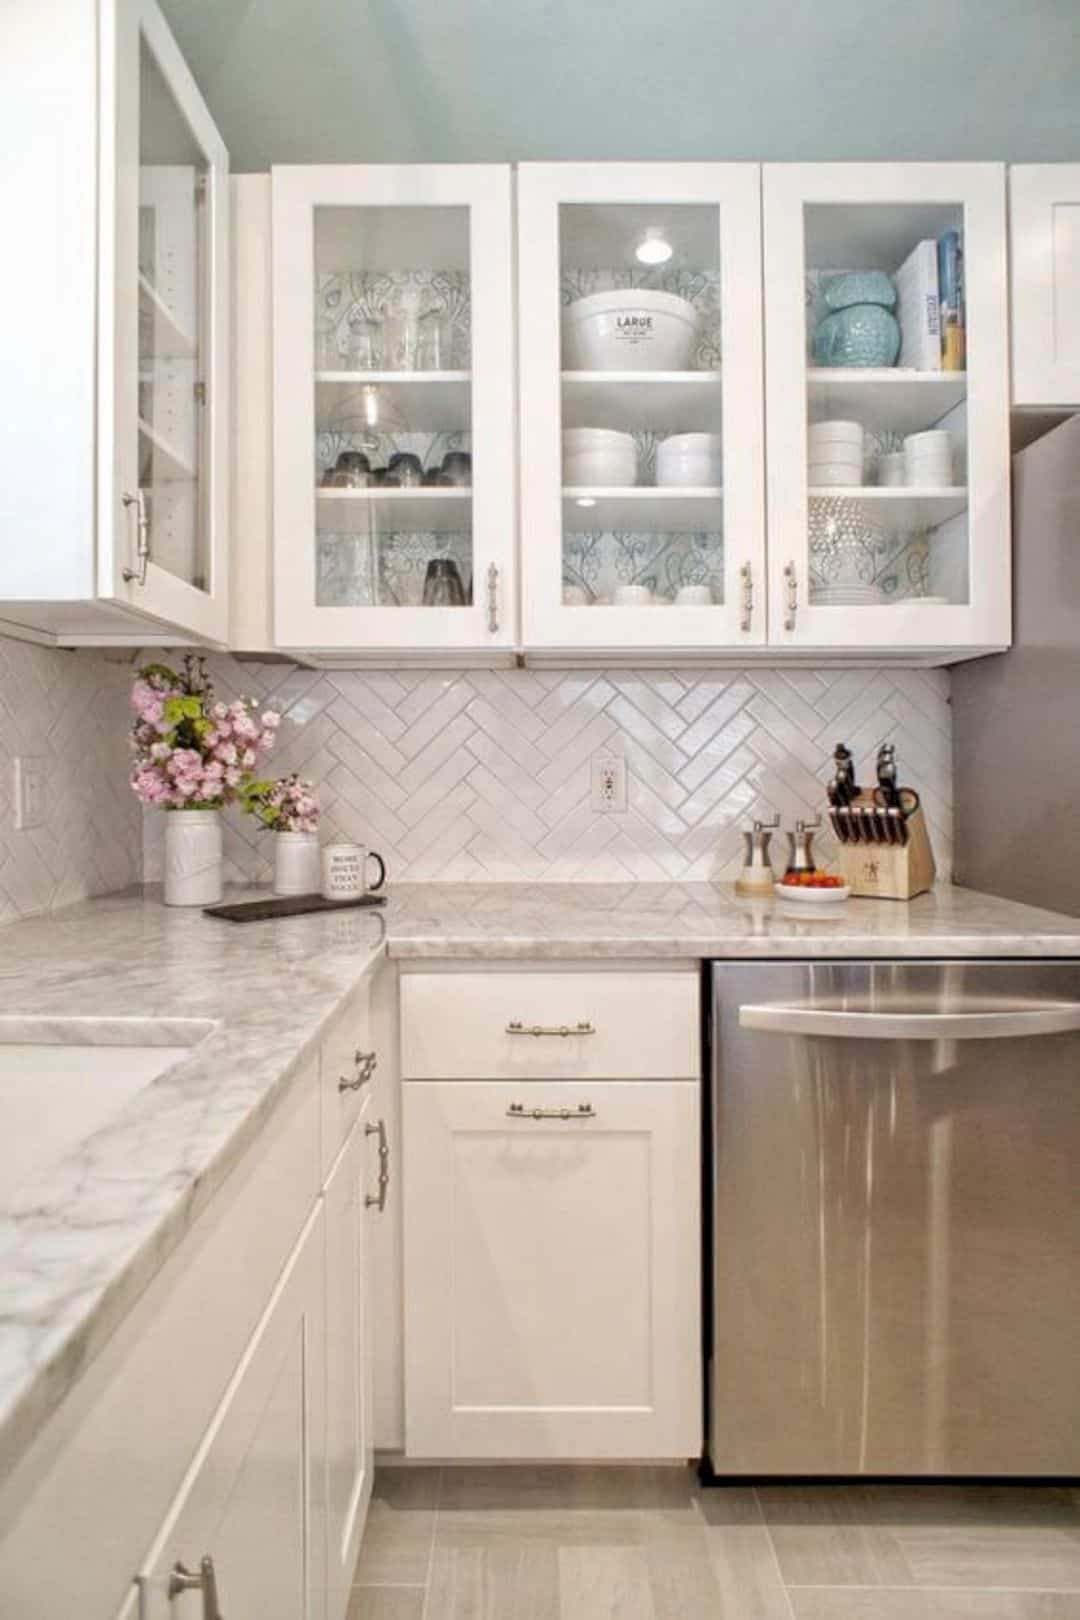 Gentle House Contemporary Interior And Small Loft Of Three Family Units In Single House Kitchen Backsplash Designs Kitchen Remodel Small Kitchen Design Small